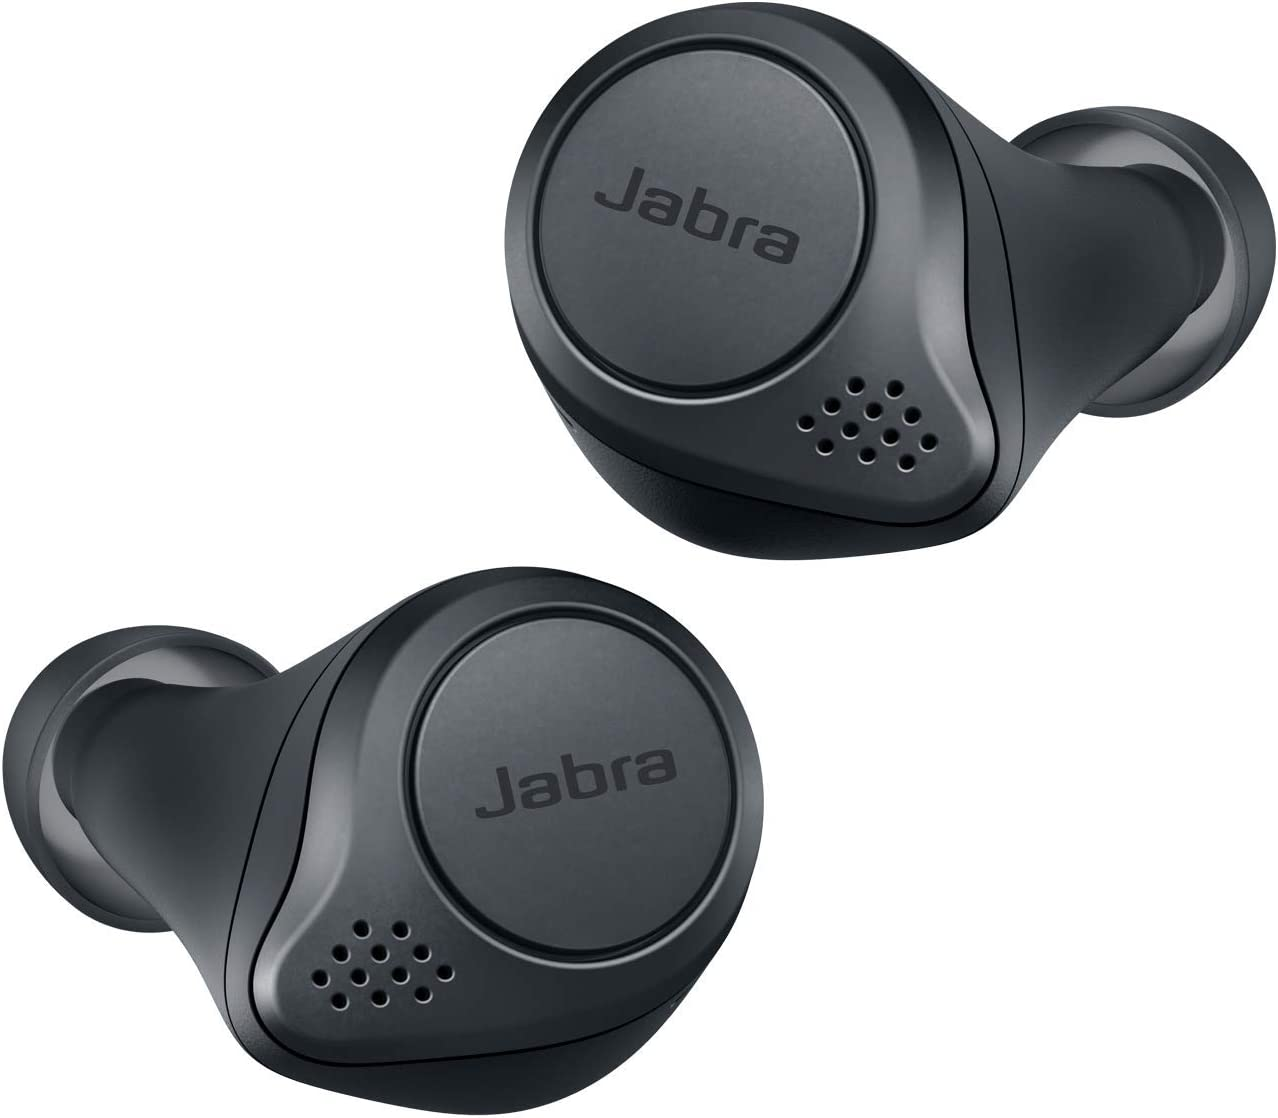 Jabra Elite Active 75t - Auriculares inalámbricos para deporte compatible con iOS/Android (Bluetooth 5.0, True Wireless), Gris